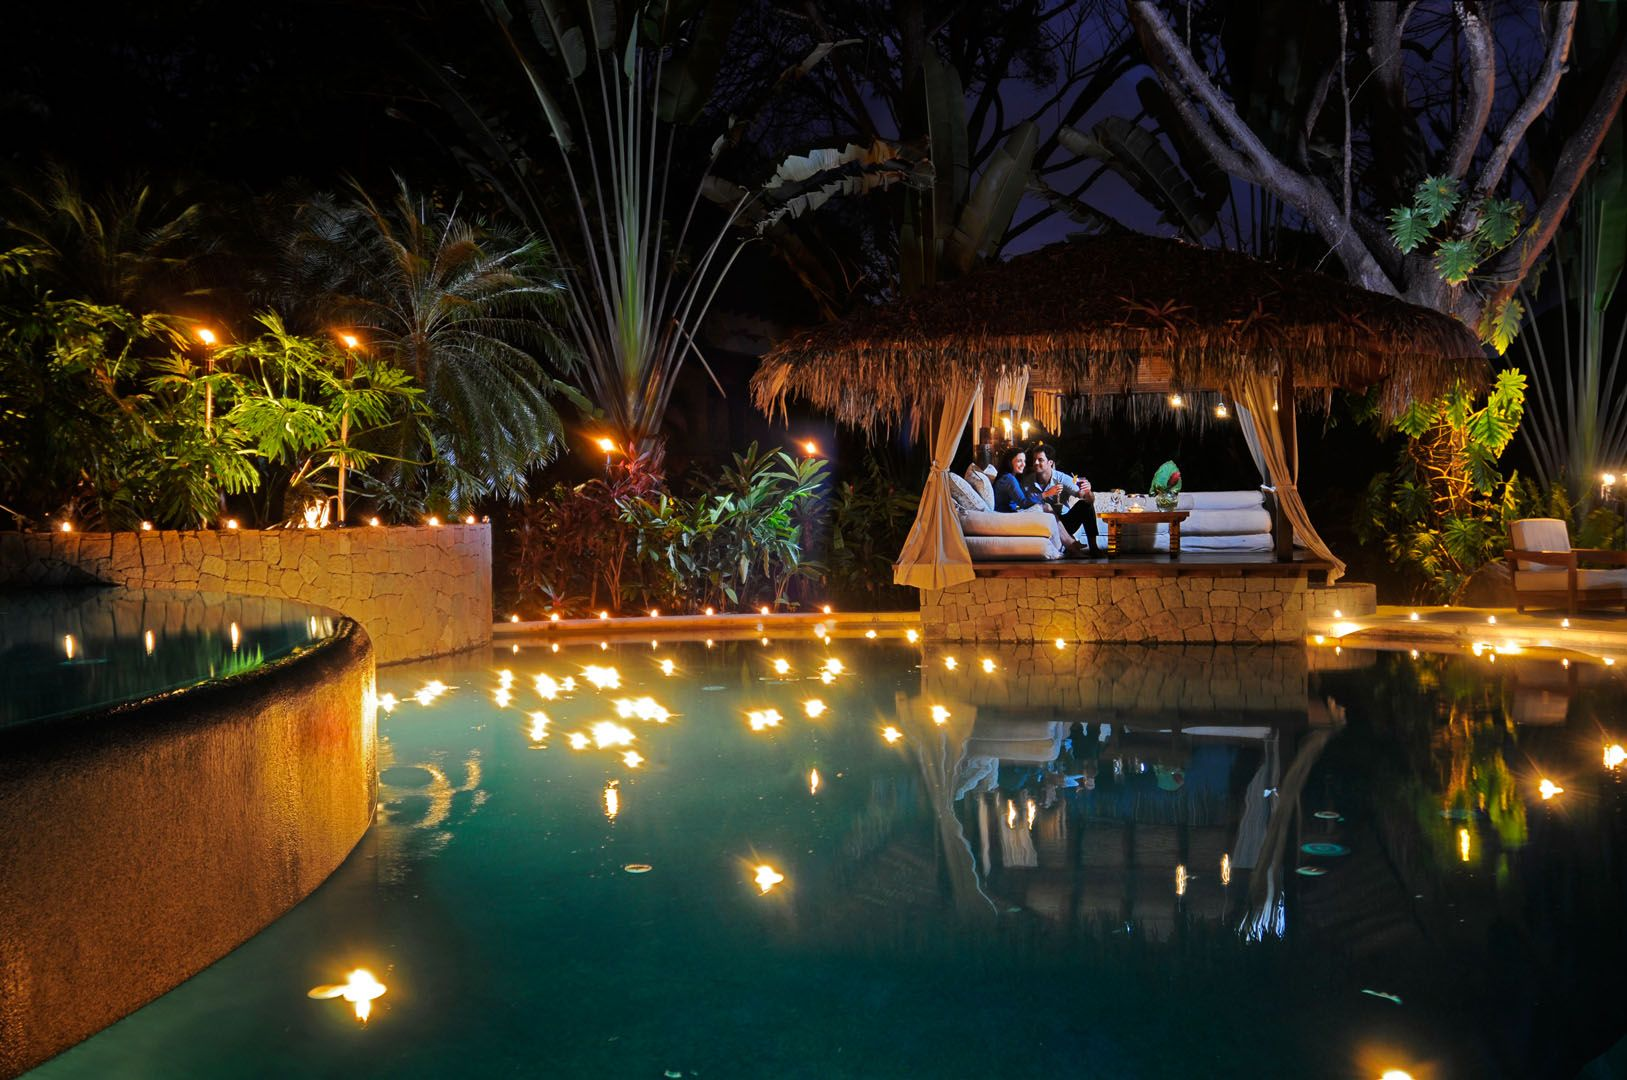 Costa rica honeymoon bliss central america vacation for Costa rica honeymoon package